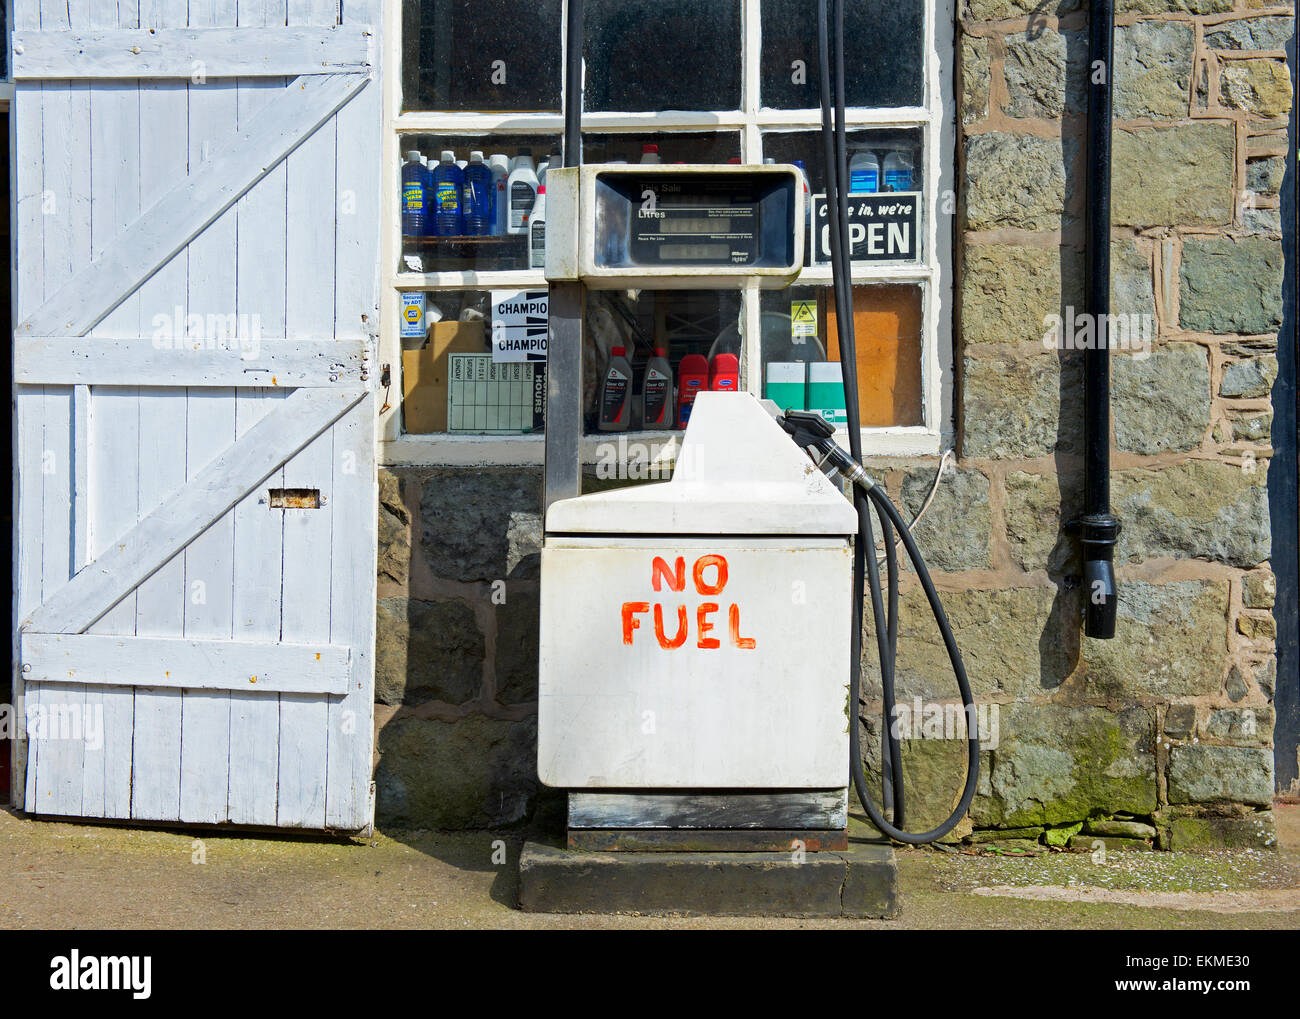 Petrol station in Montgomery, Powys, Wales, UK, with sign on petrol pump: No Fuel - Stock Image